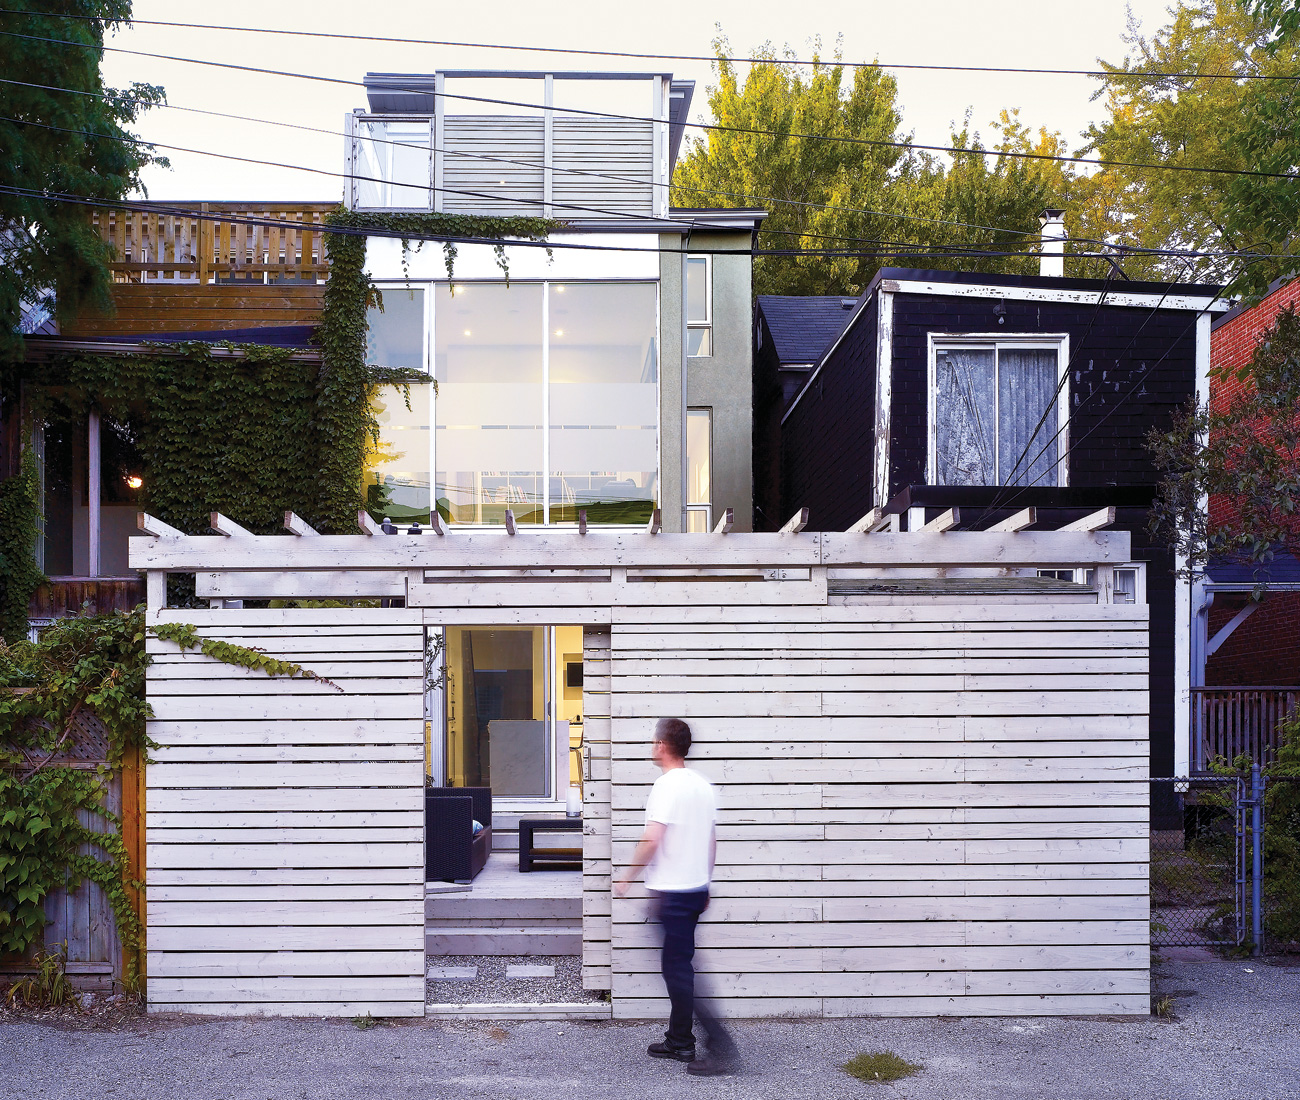 Like most row houses in Cabbagetown, the backyard faces onto a laneway. Dubbeldam frosted portions of the low-e glazed cladding to maximize light and heat without giving up privacy.